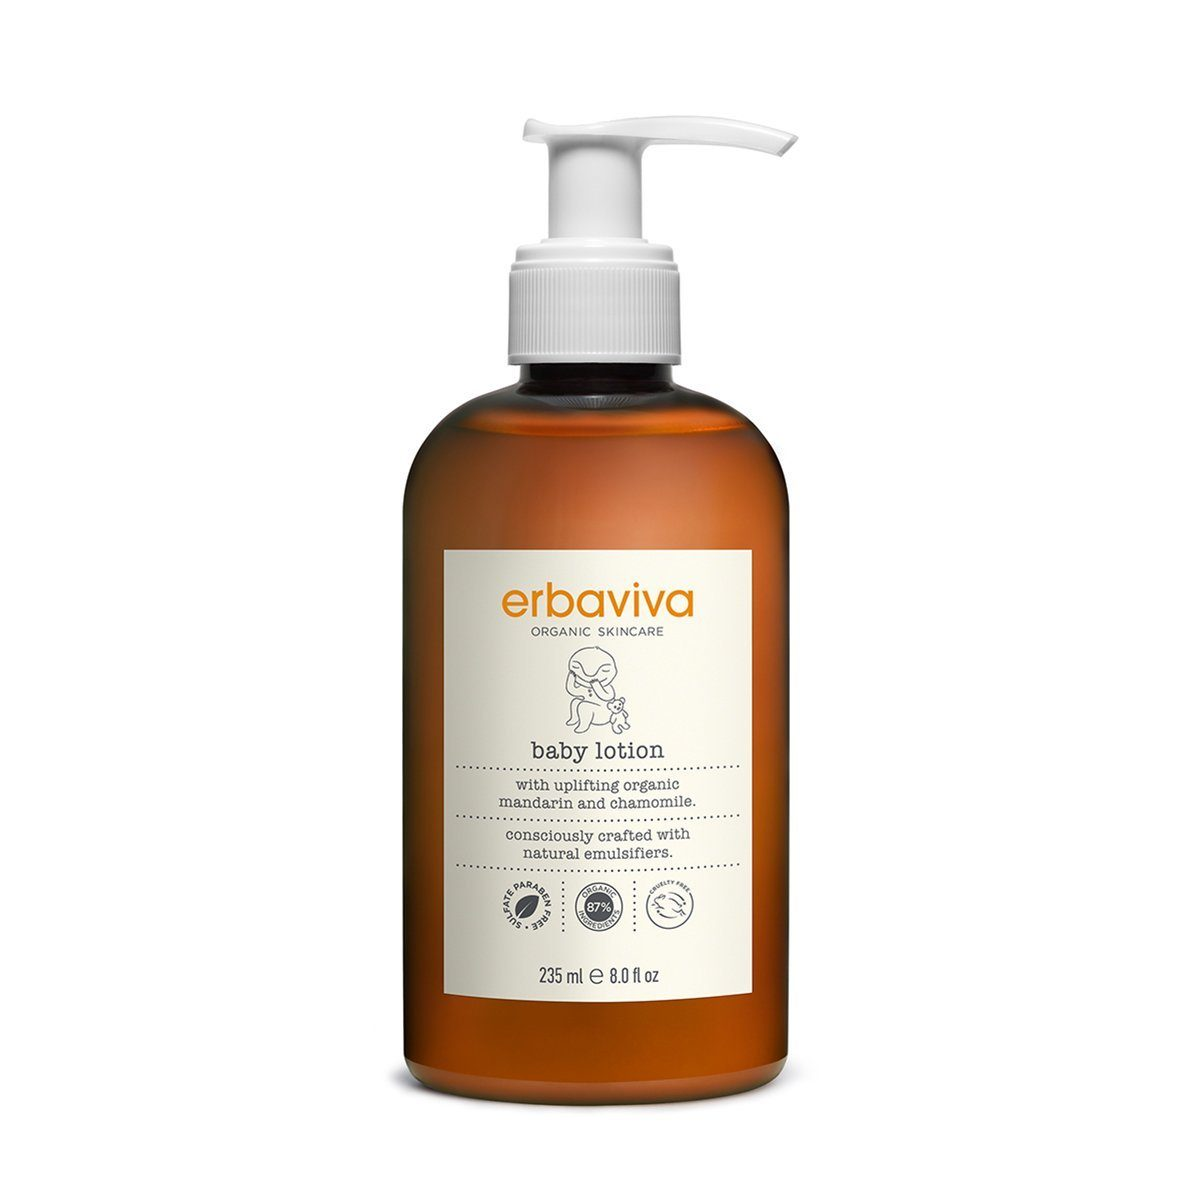 Erbaviva Baby Lotion - Switch 2 Pure